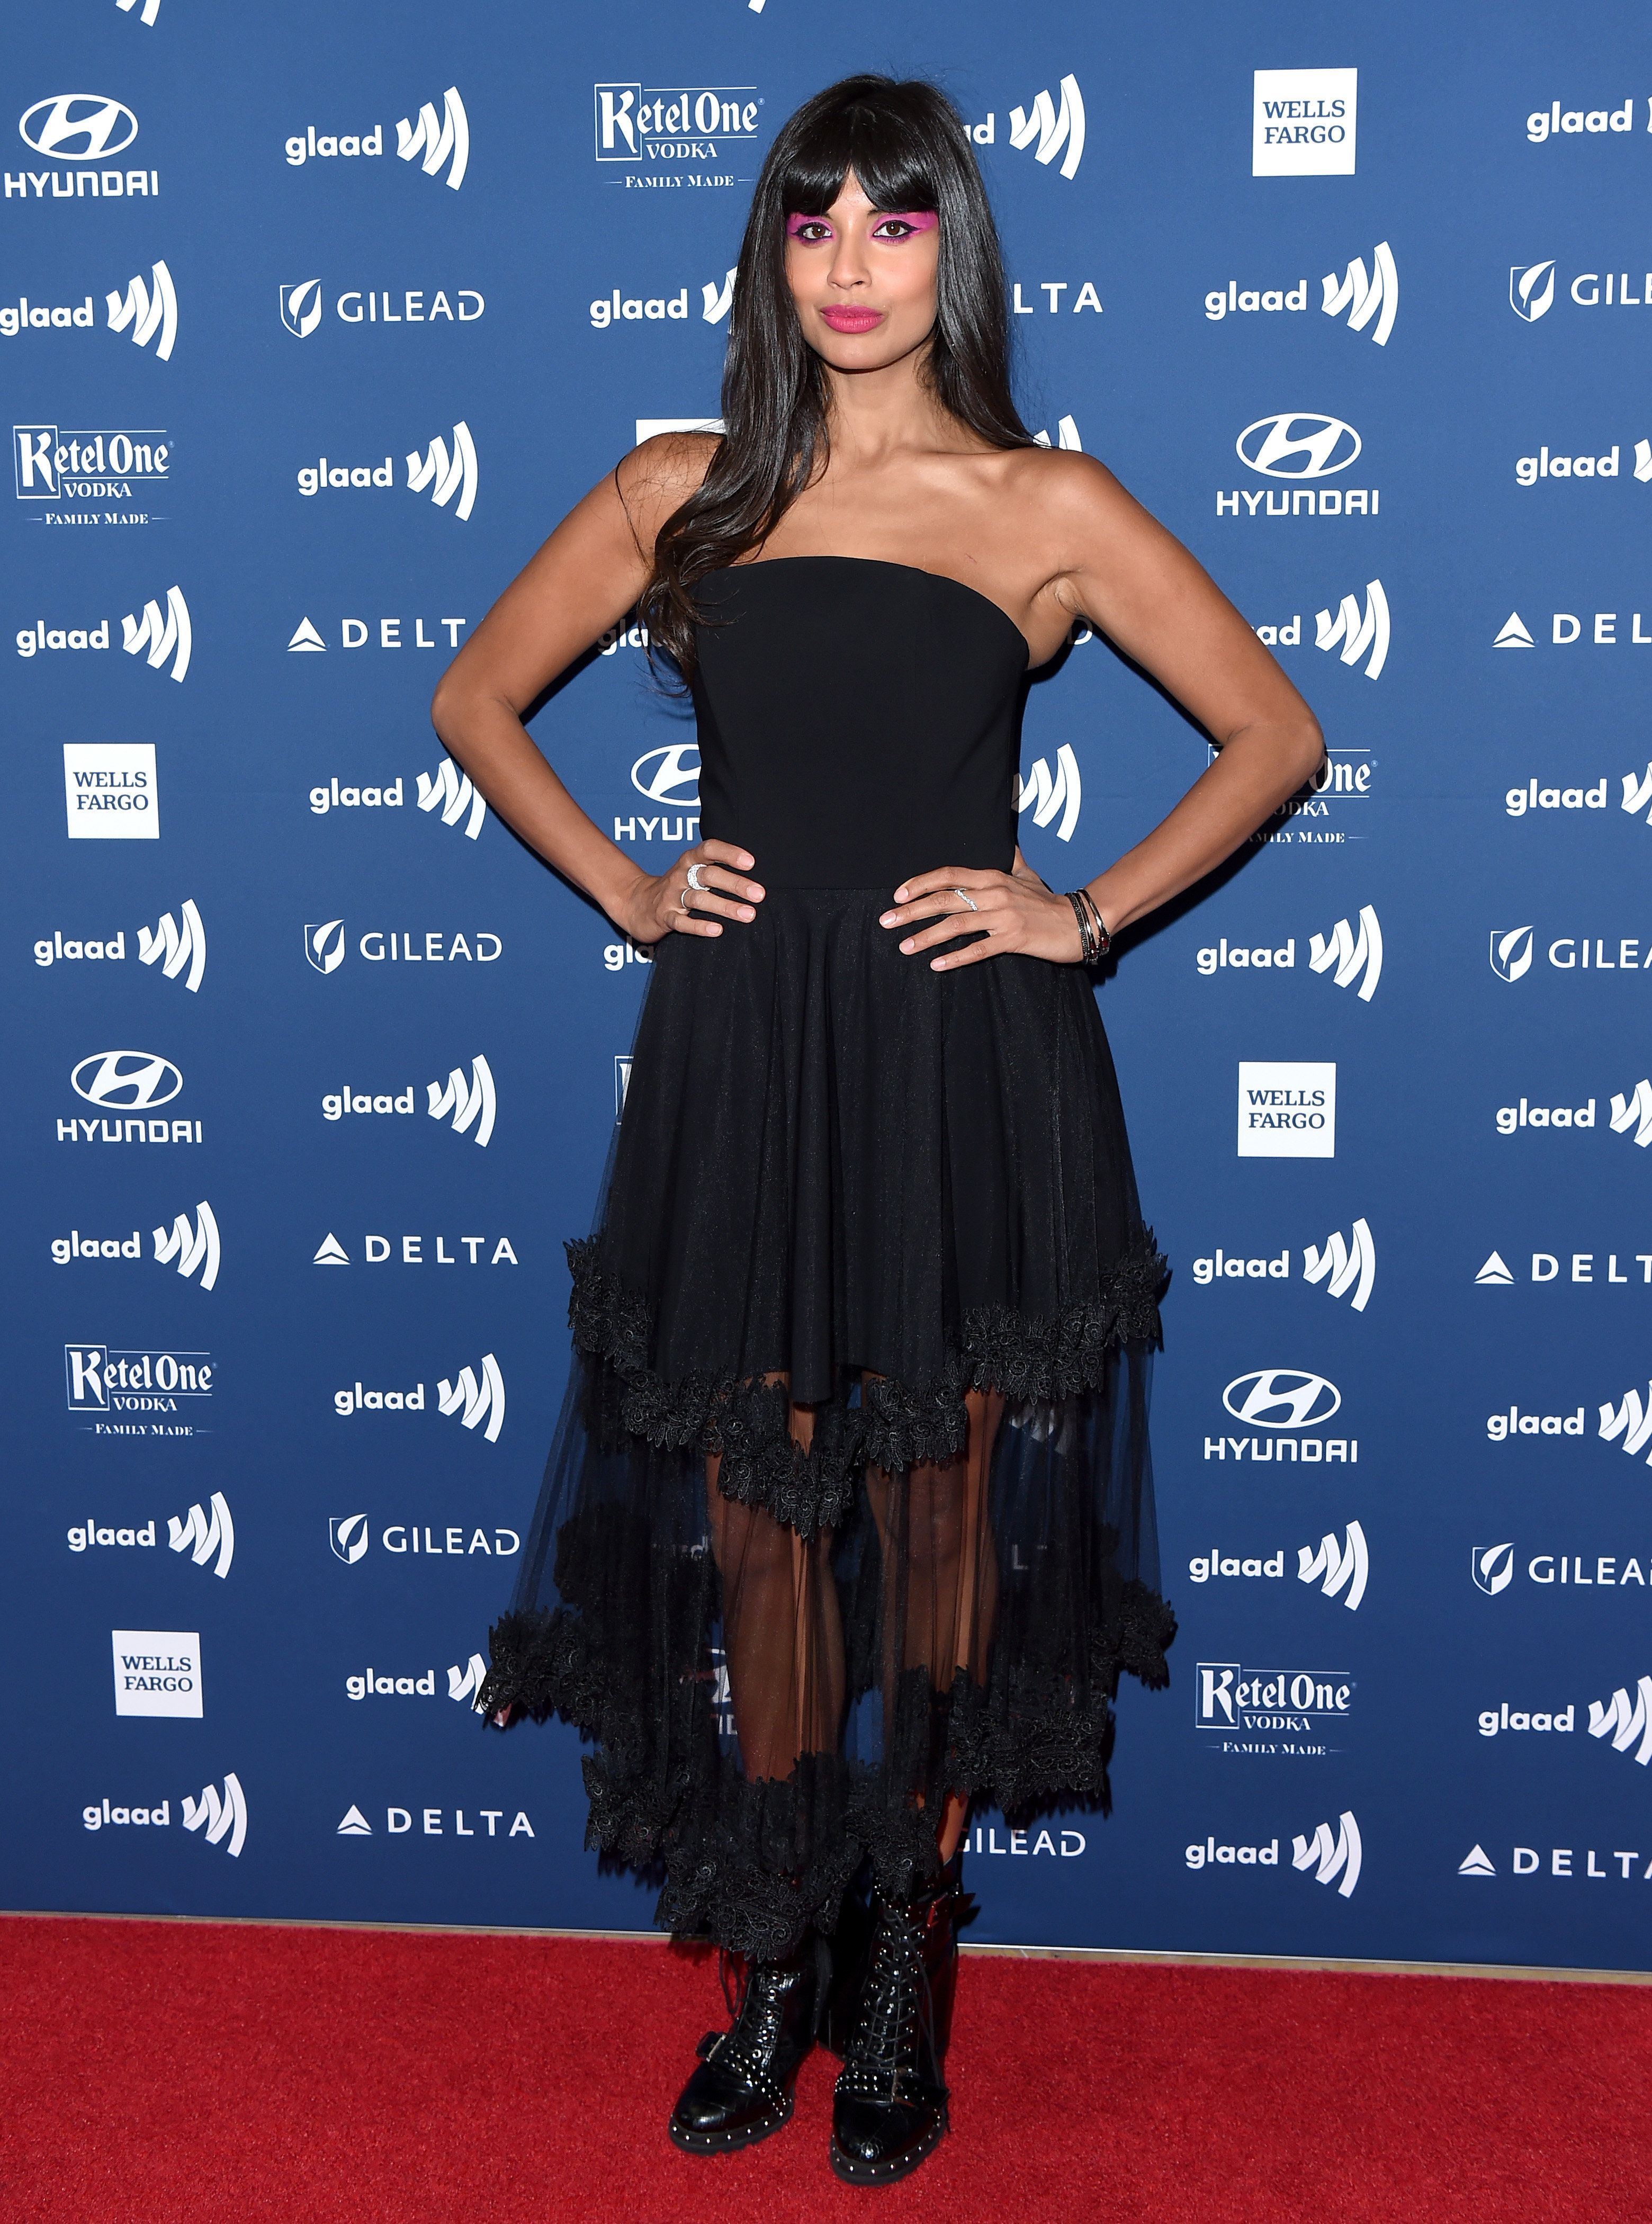 BEVERLY HILLS, CALIFORNIA - MARCH 28: Jameela Jamil attends the 30th Annual GLAAD Media Awards at The Beverly Hilton Hotel on March 28, 2019 in Beverly Hills, California. (Photo by Axelle/Bauer-Griffin/FilmMagic)